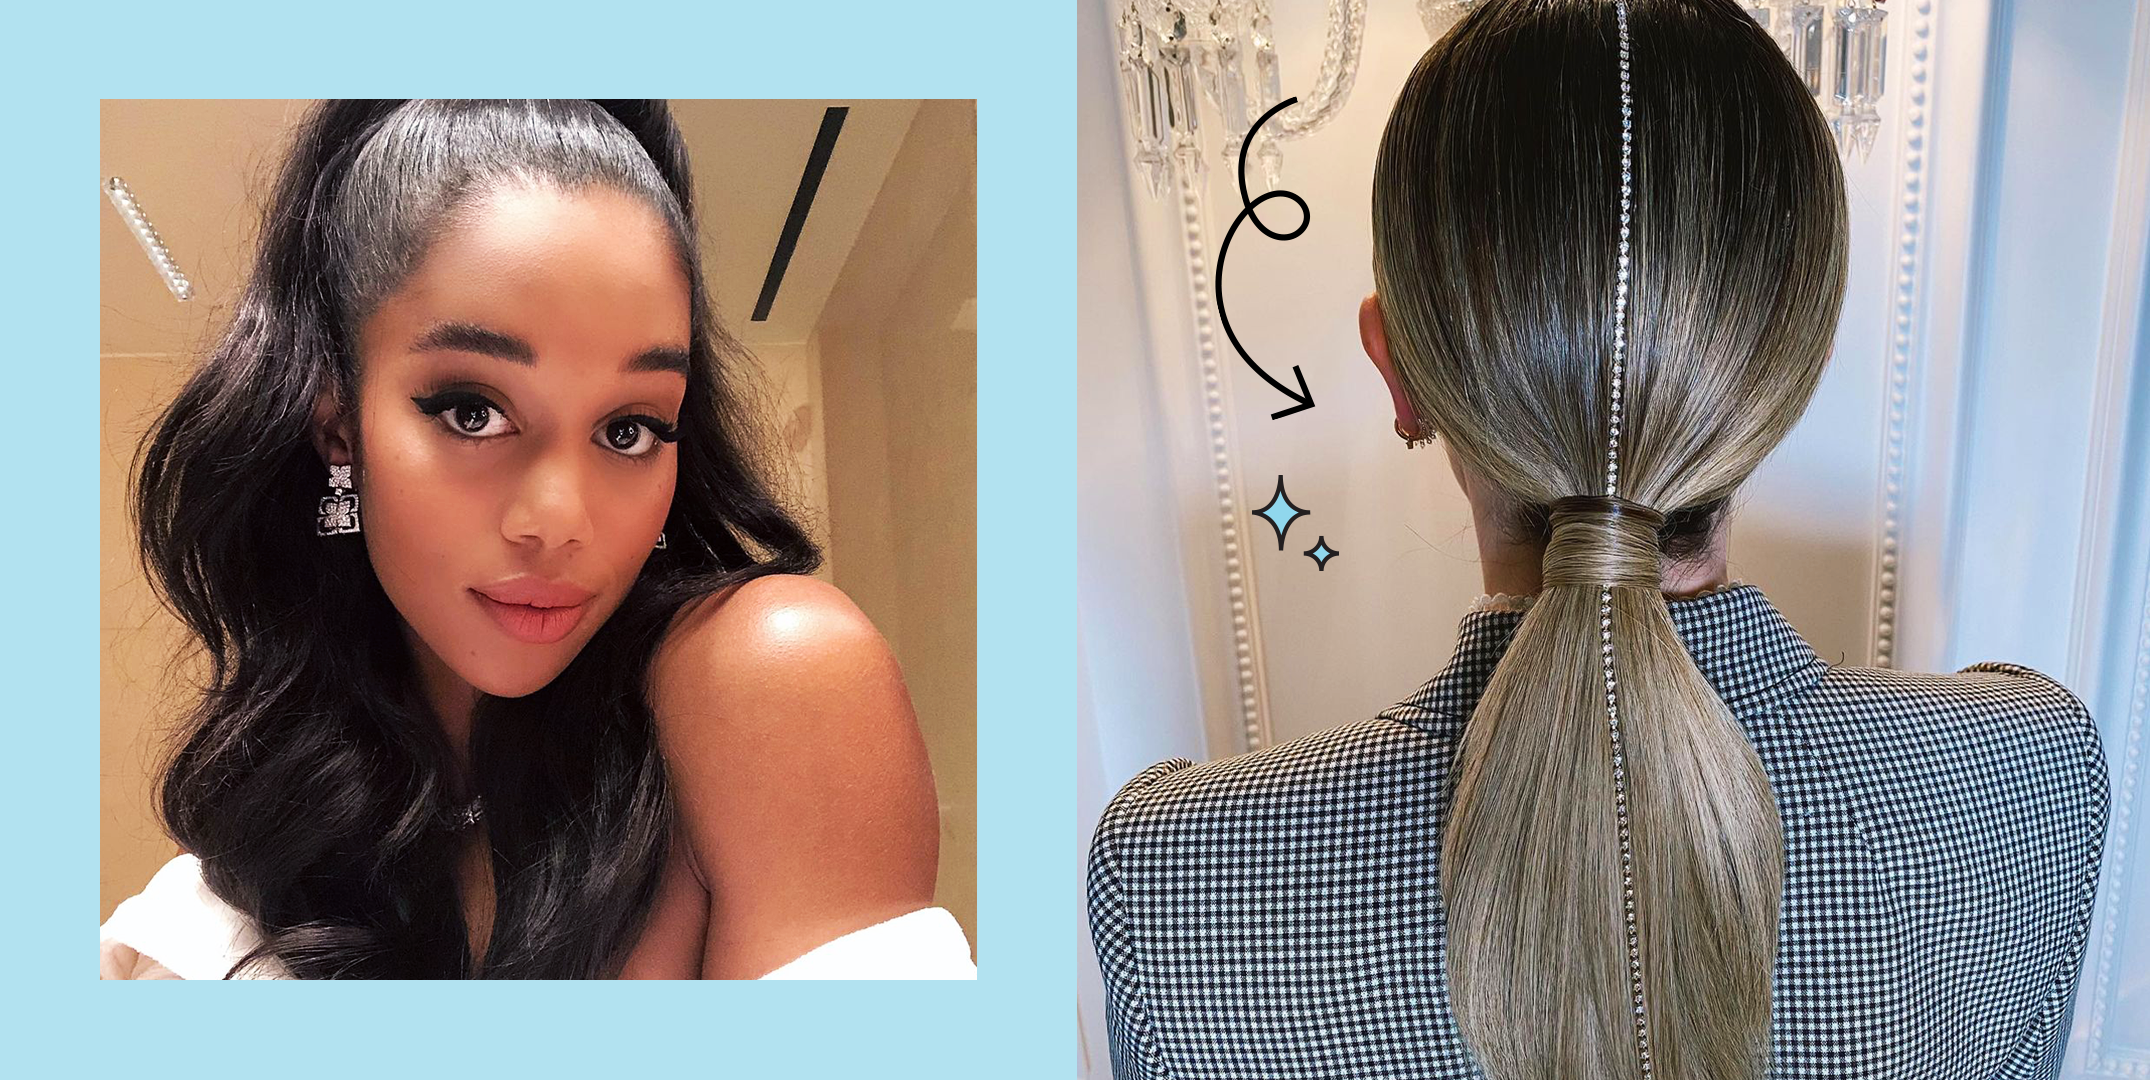 27 Gorgeous New Year S Hairstyle Ideas And Inspiration For 2020 Easy, fun and festive for family and friends together on new year's eve. 27 gorgeous new year s hairstyle ideas